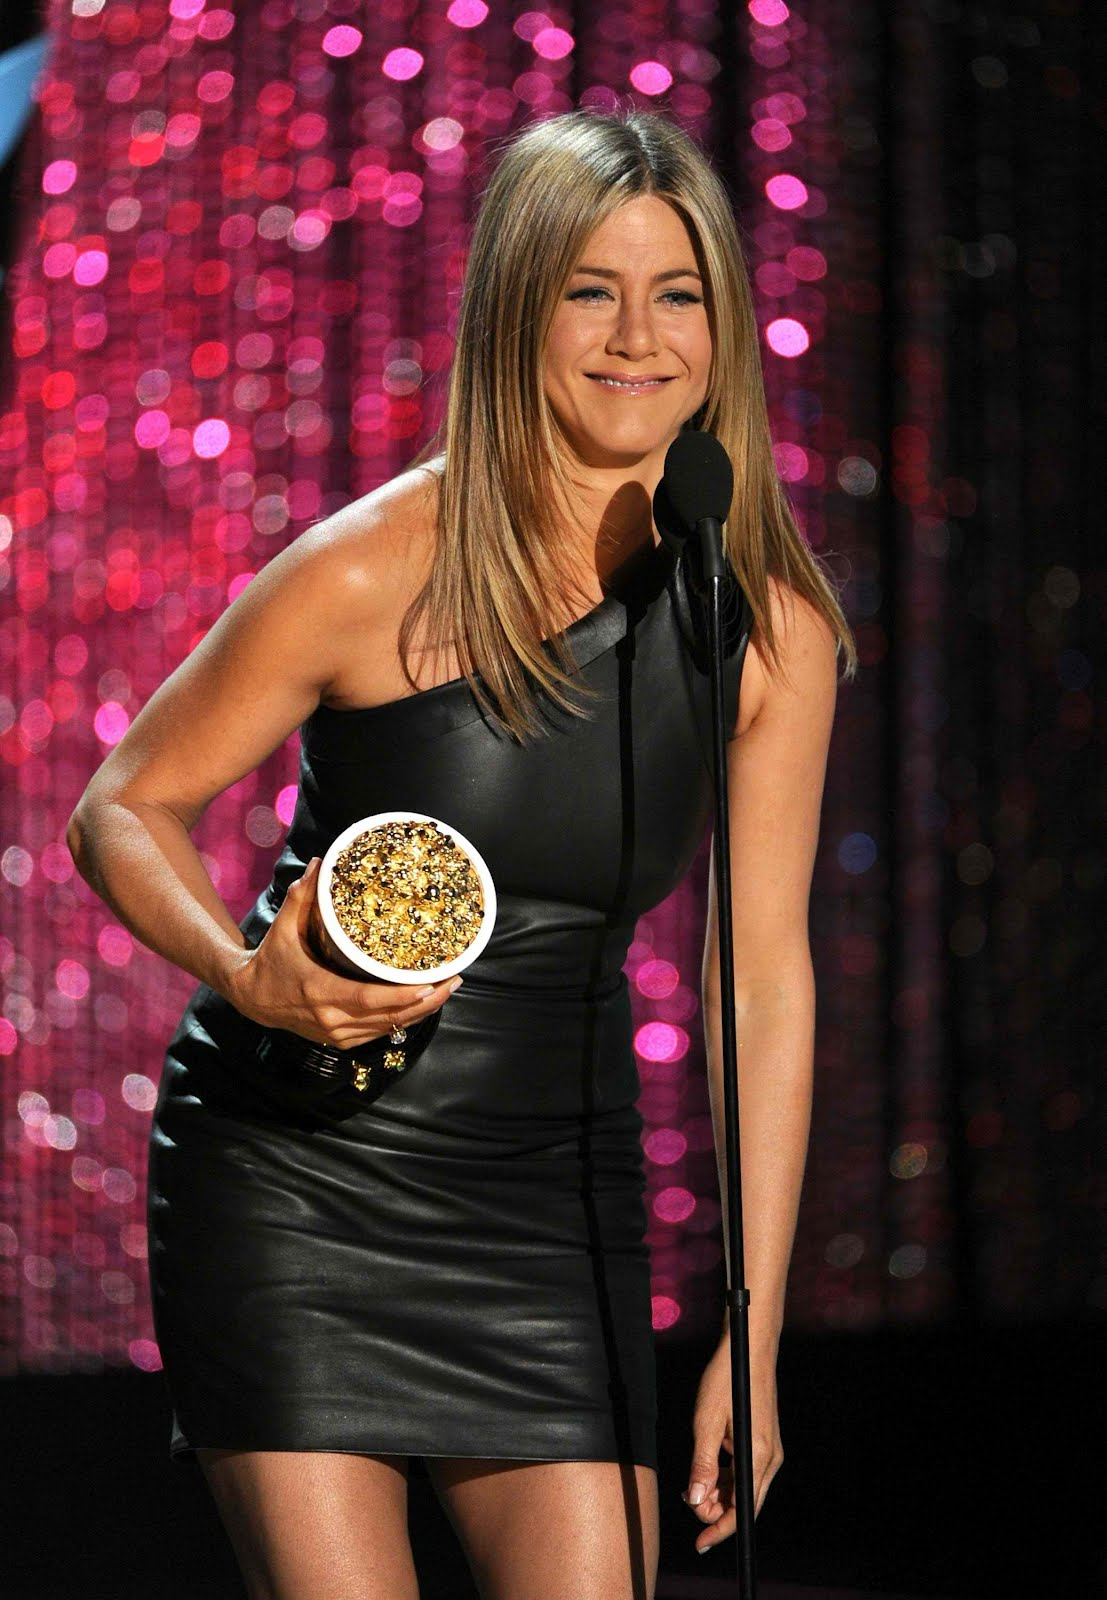 http://4.bp.blogspot.com/-BqtJP-W32p8/T9VVgMaEIjI/AAAAAAAAEGg/hKMfet-O1z4/s1600/jennifer-aniston-leather-dress-mtv-movie-awards-07.jpg